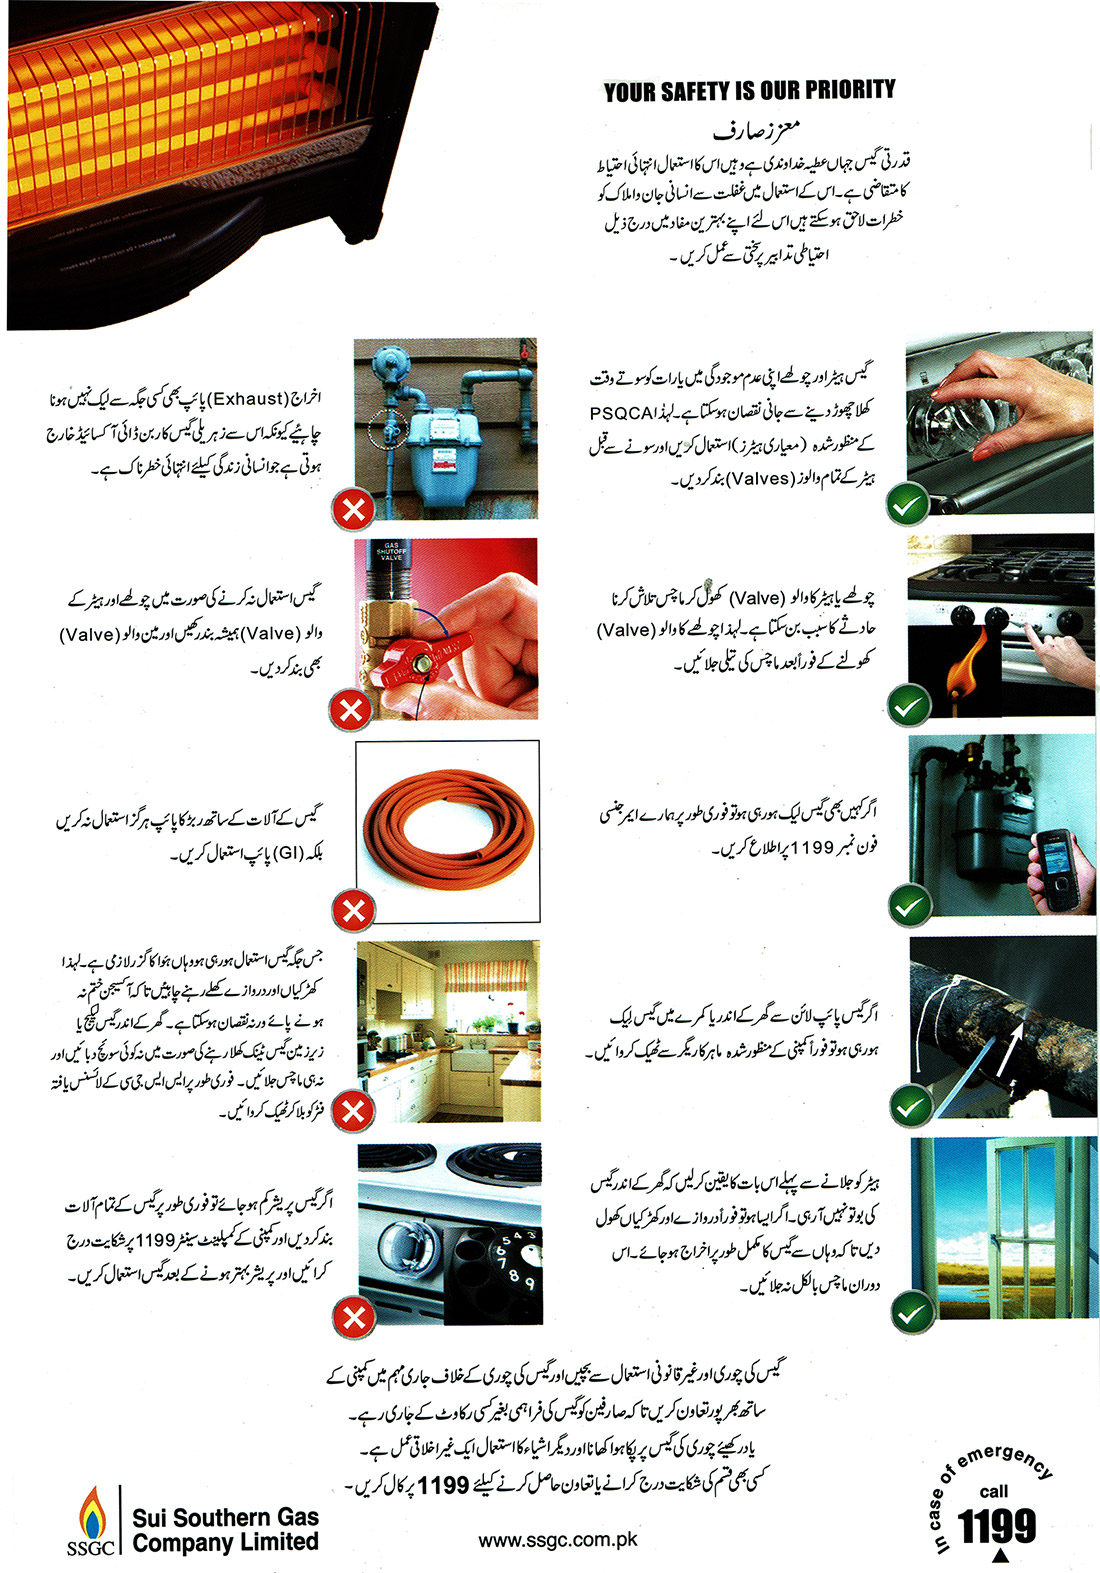 safety_education_urdu_2017